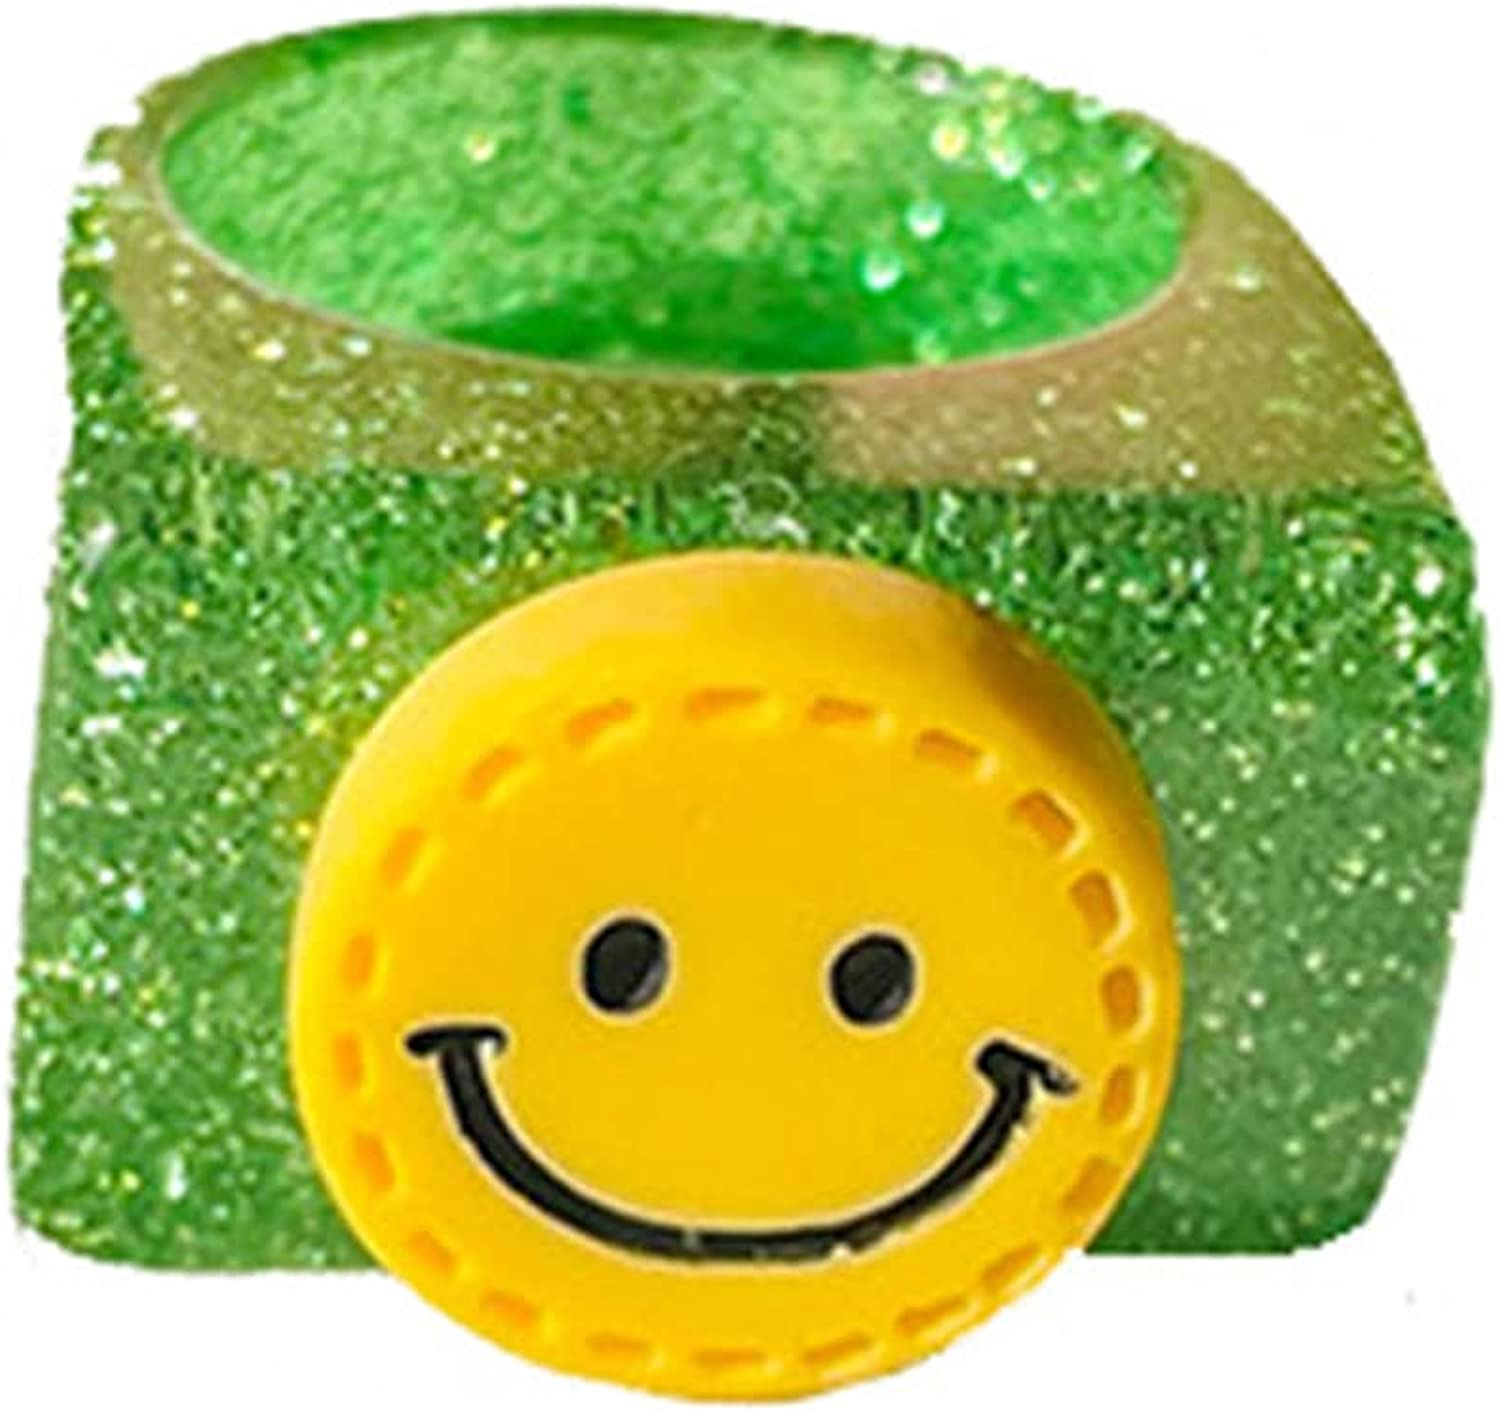 1-4 Pcs Colorful Happy Face Acrylic Ring Statement Transparent Smile Resin Sequins Ring Summer Lovely Face Ring for Women Girls